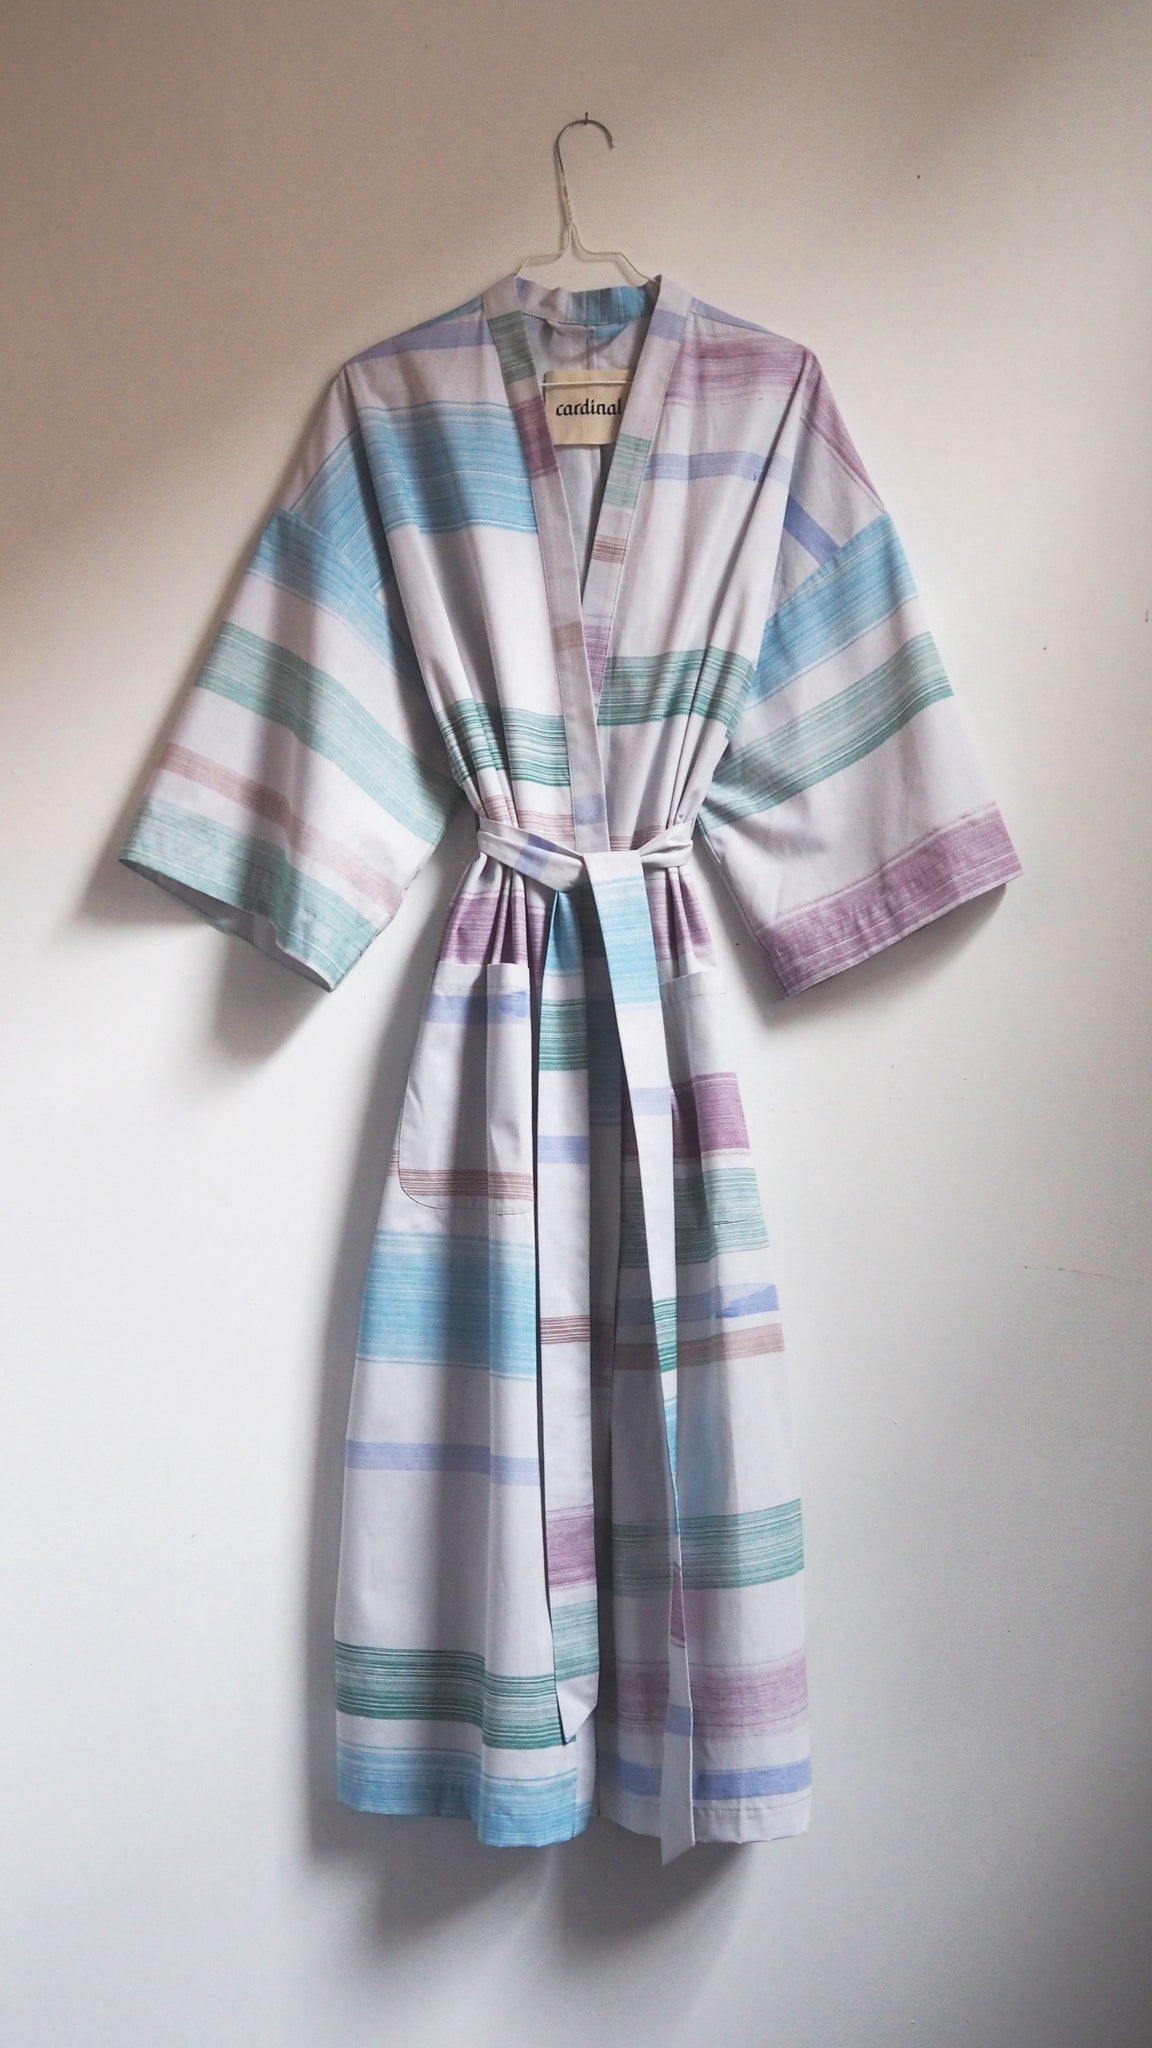 ROBE / stripes on grey